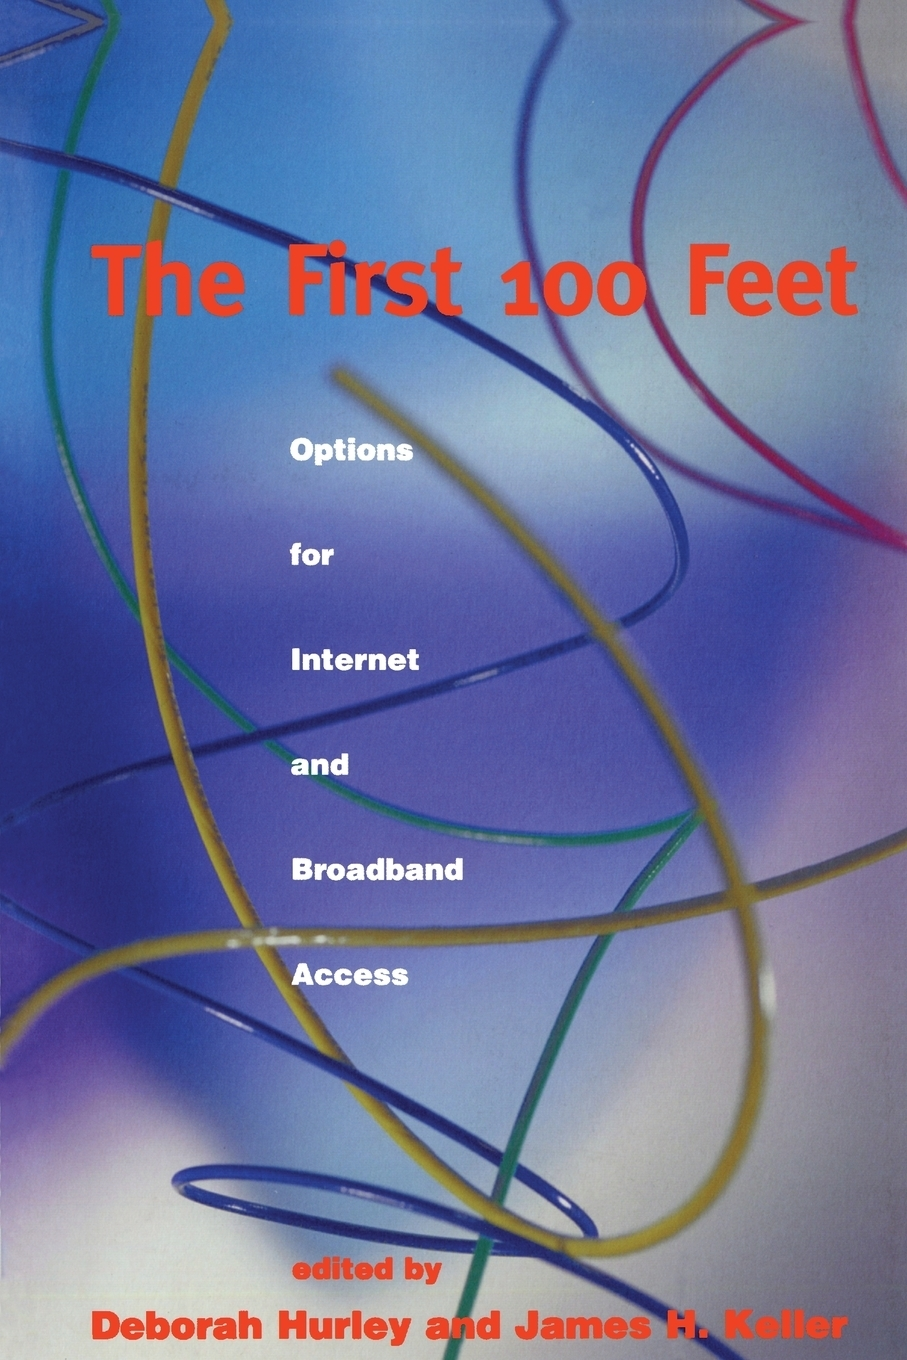 The First 100 Feet. Options for Internet and Broadband Access